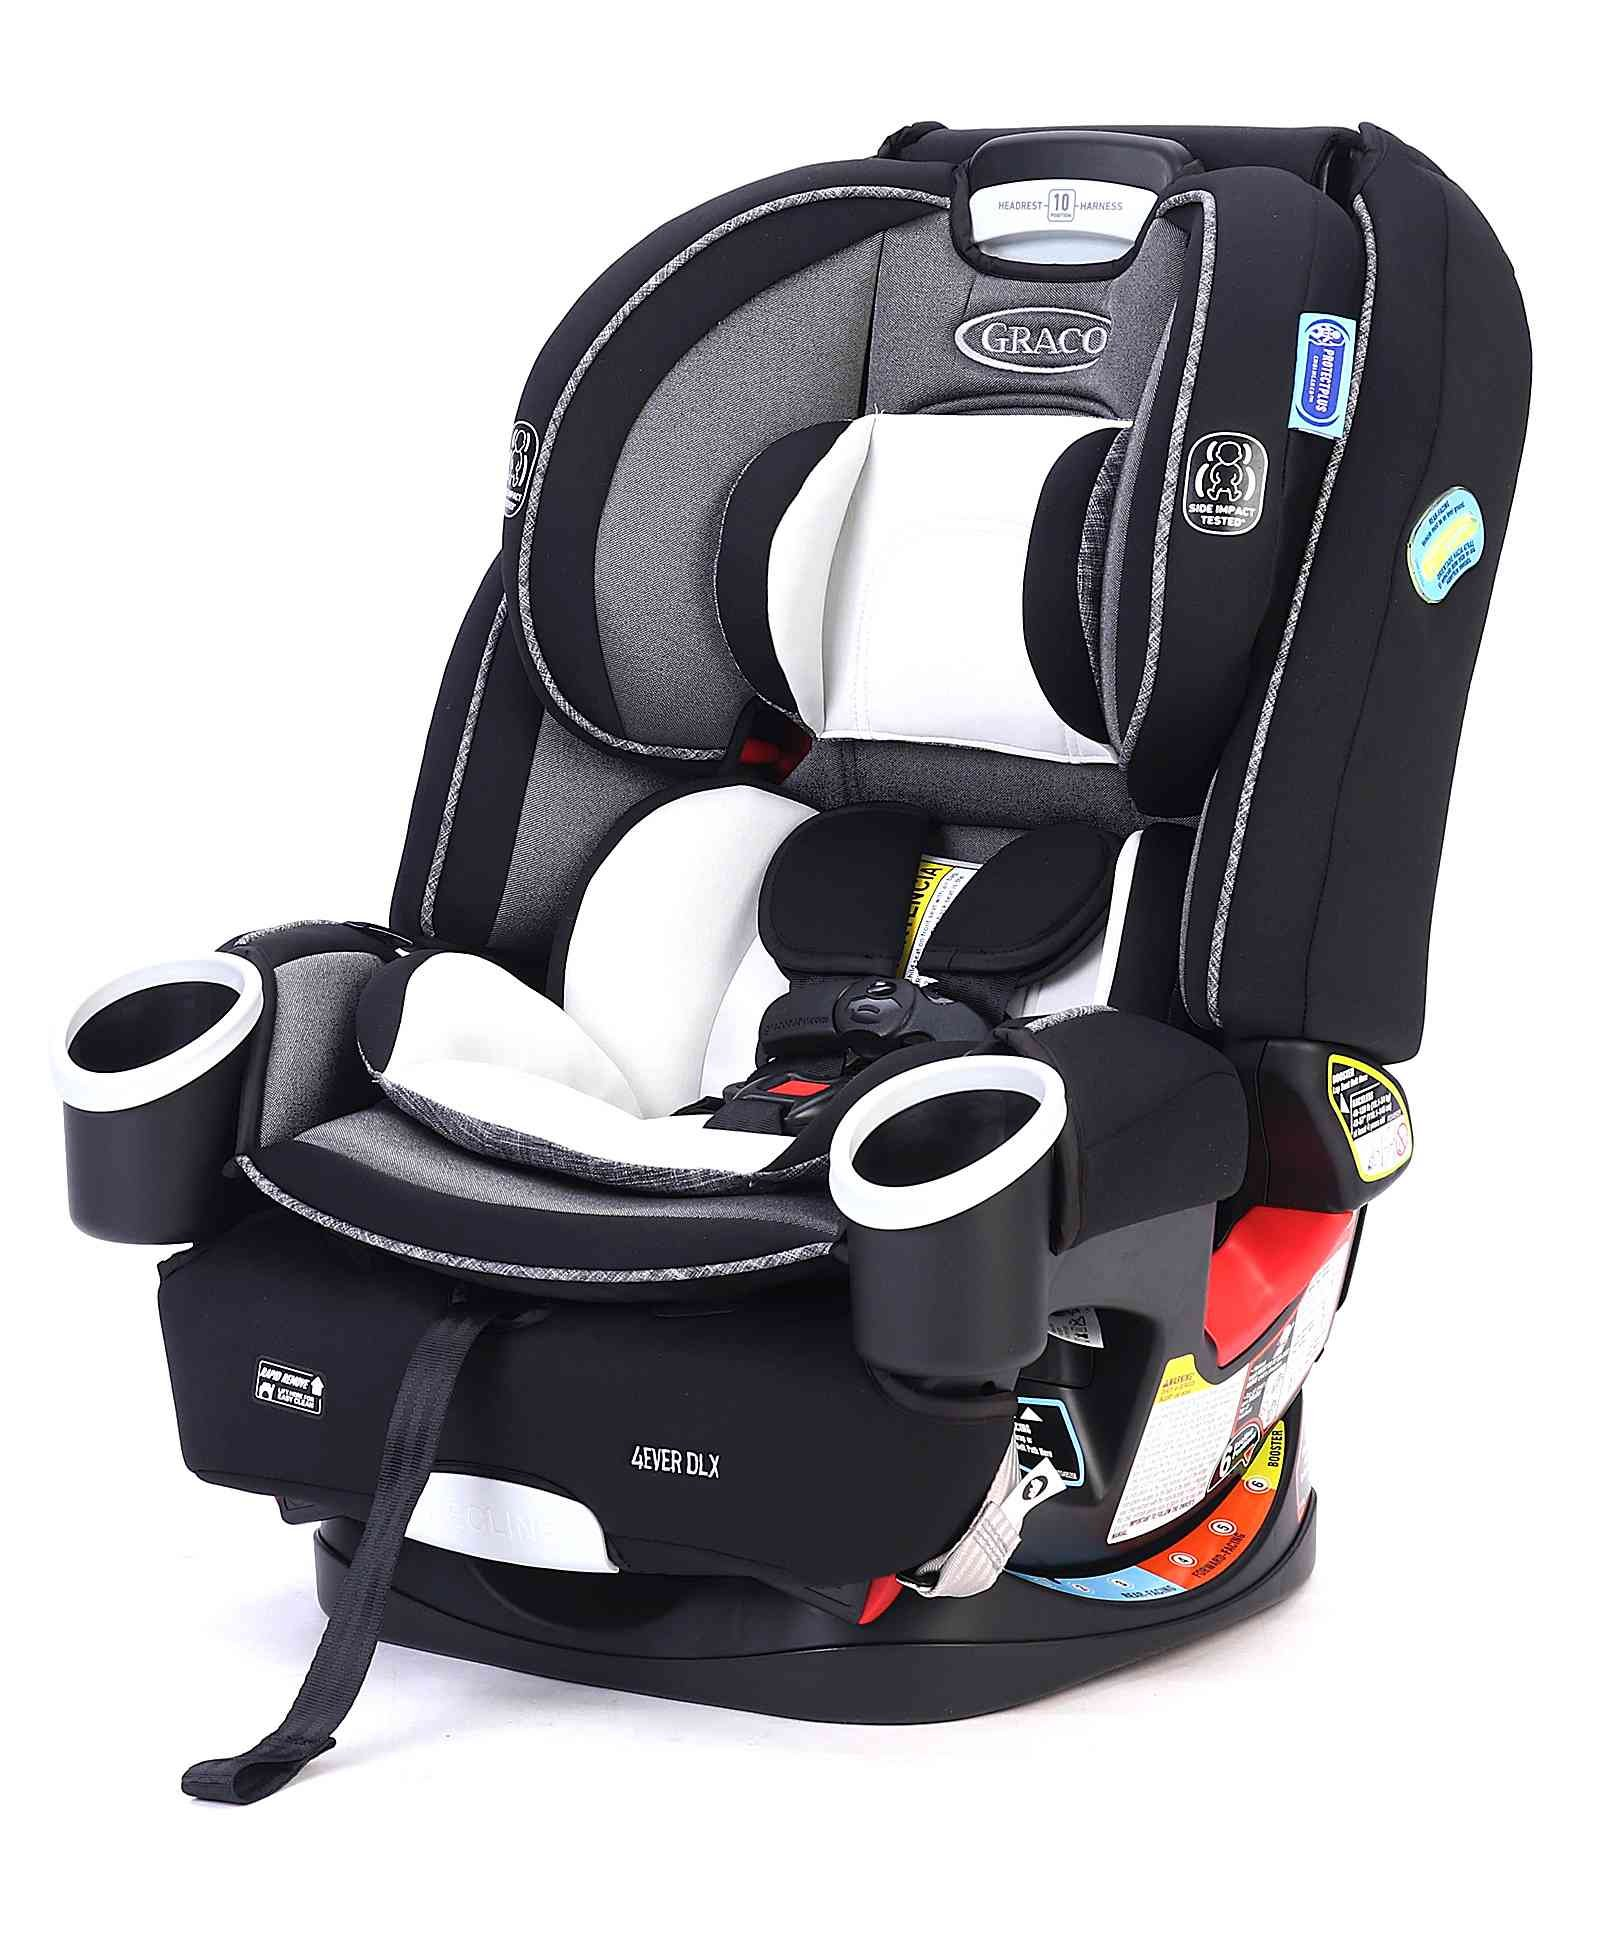 Graco Dlx 4 In 1 Car Seat Grey Online In India Buy At Best Price From Firstcry Com 8329189